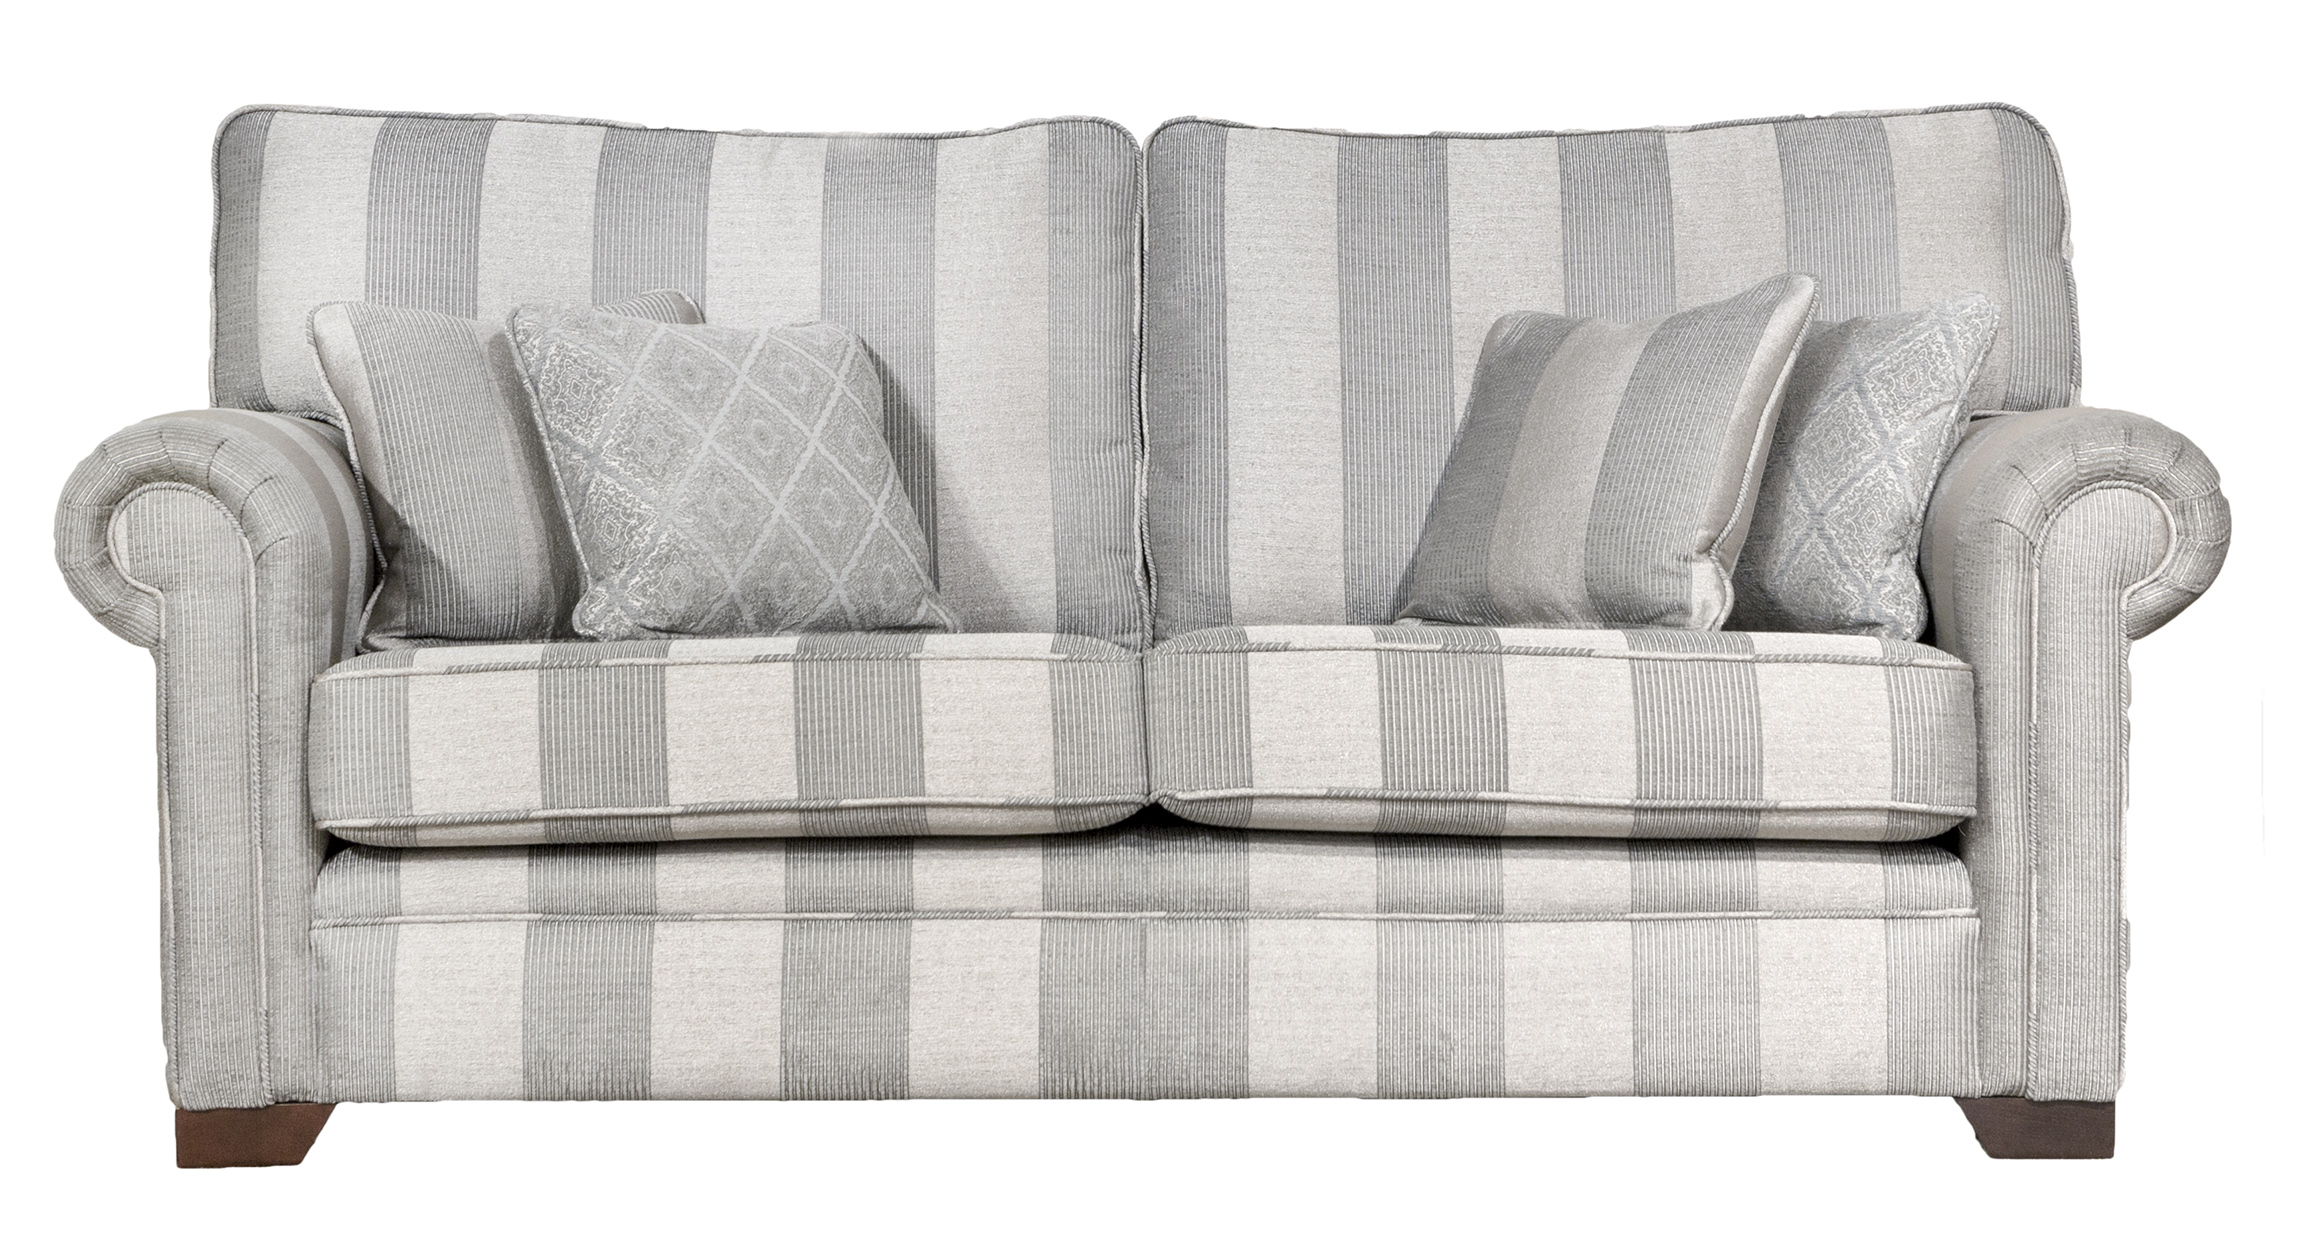 Imperial Large Sofa - Platinum Collection - Nebbiolo Stripe Powder